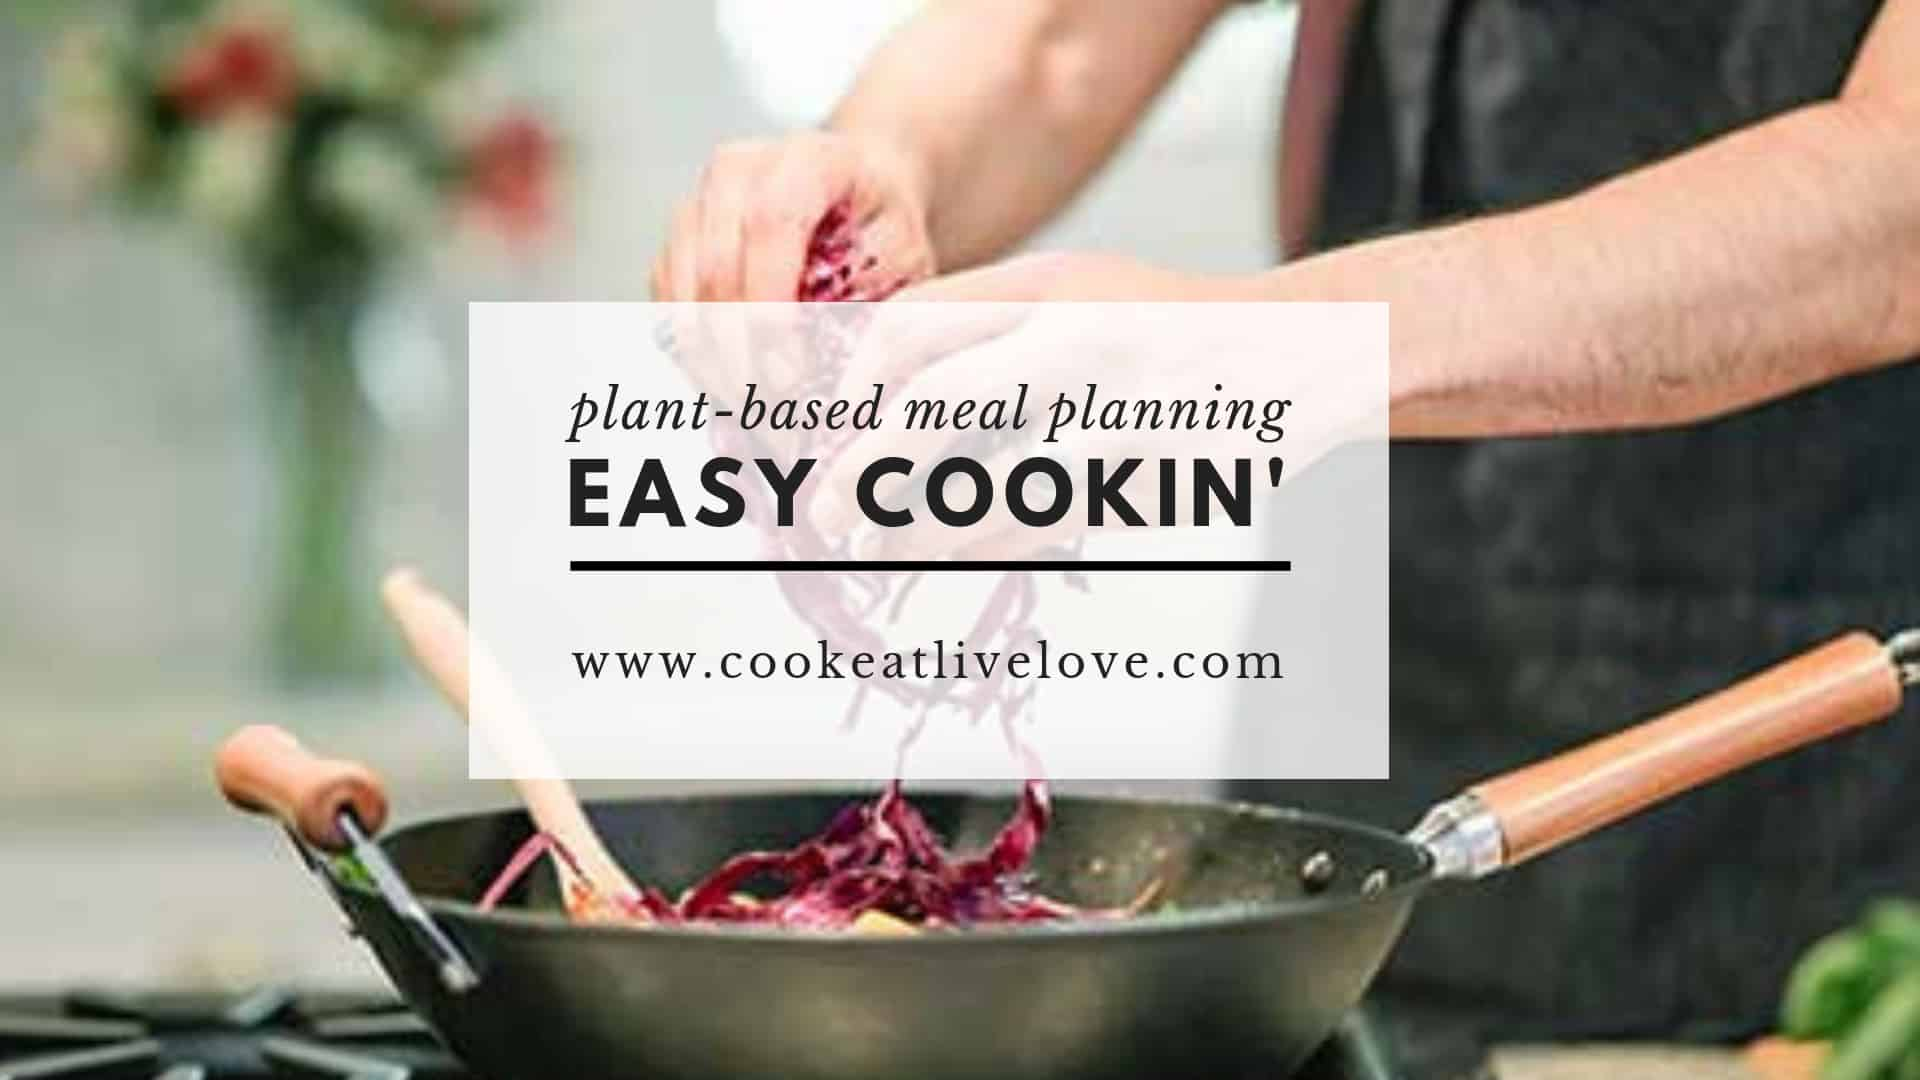 Eat nutritious and delicious meals and save time with Easy Cookin'